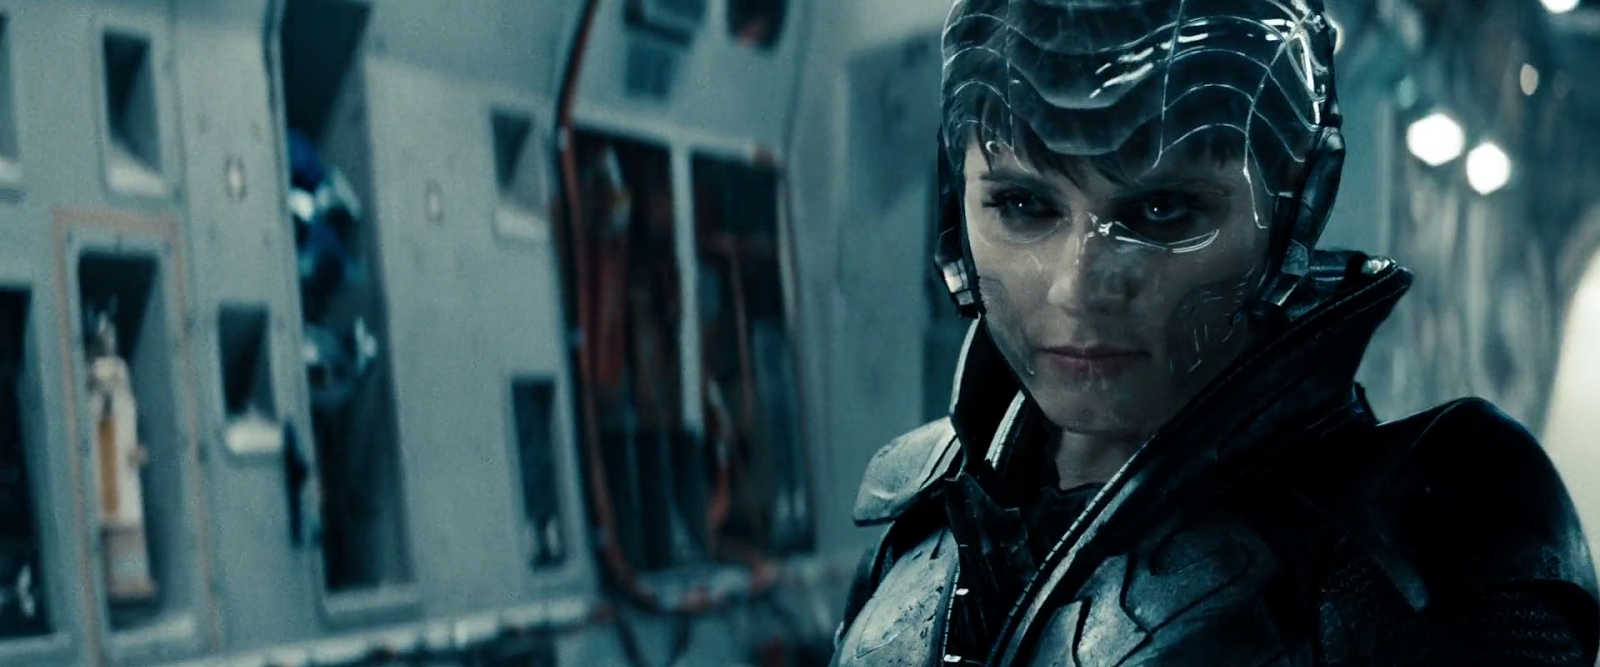 Antje traue man of steel